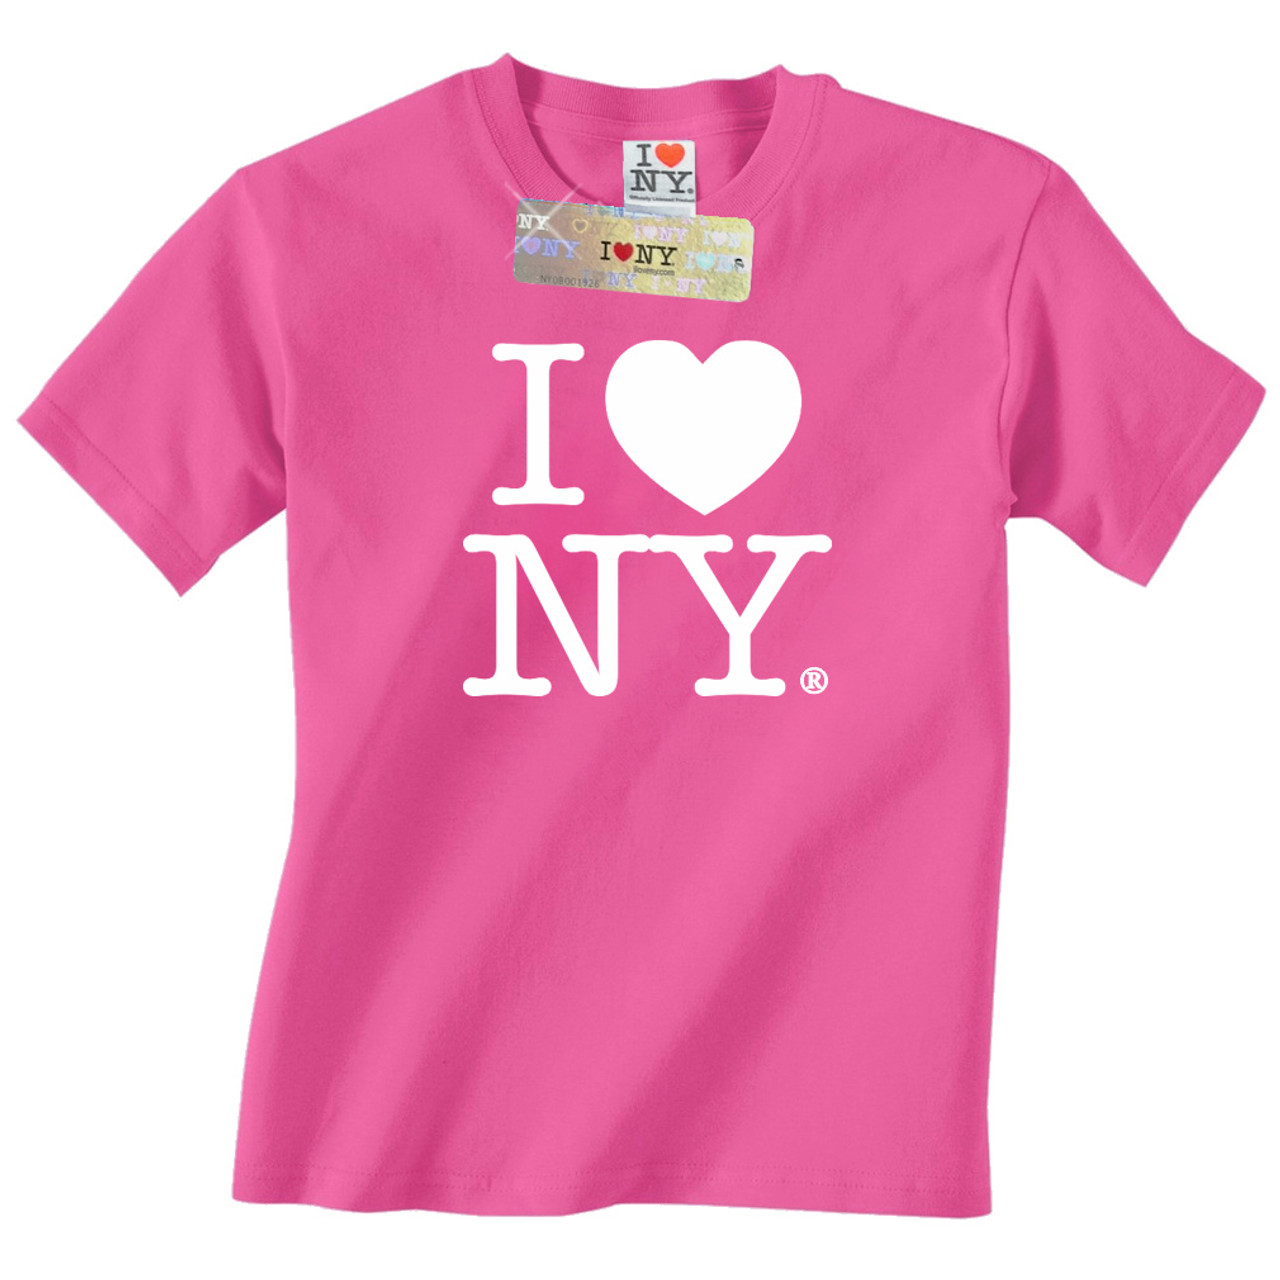 898ef1c5640a Hot Pink I Love NY T-Shirt. Brand   Clothing